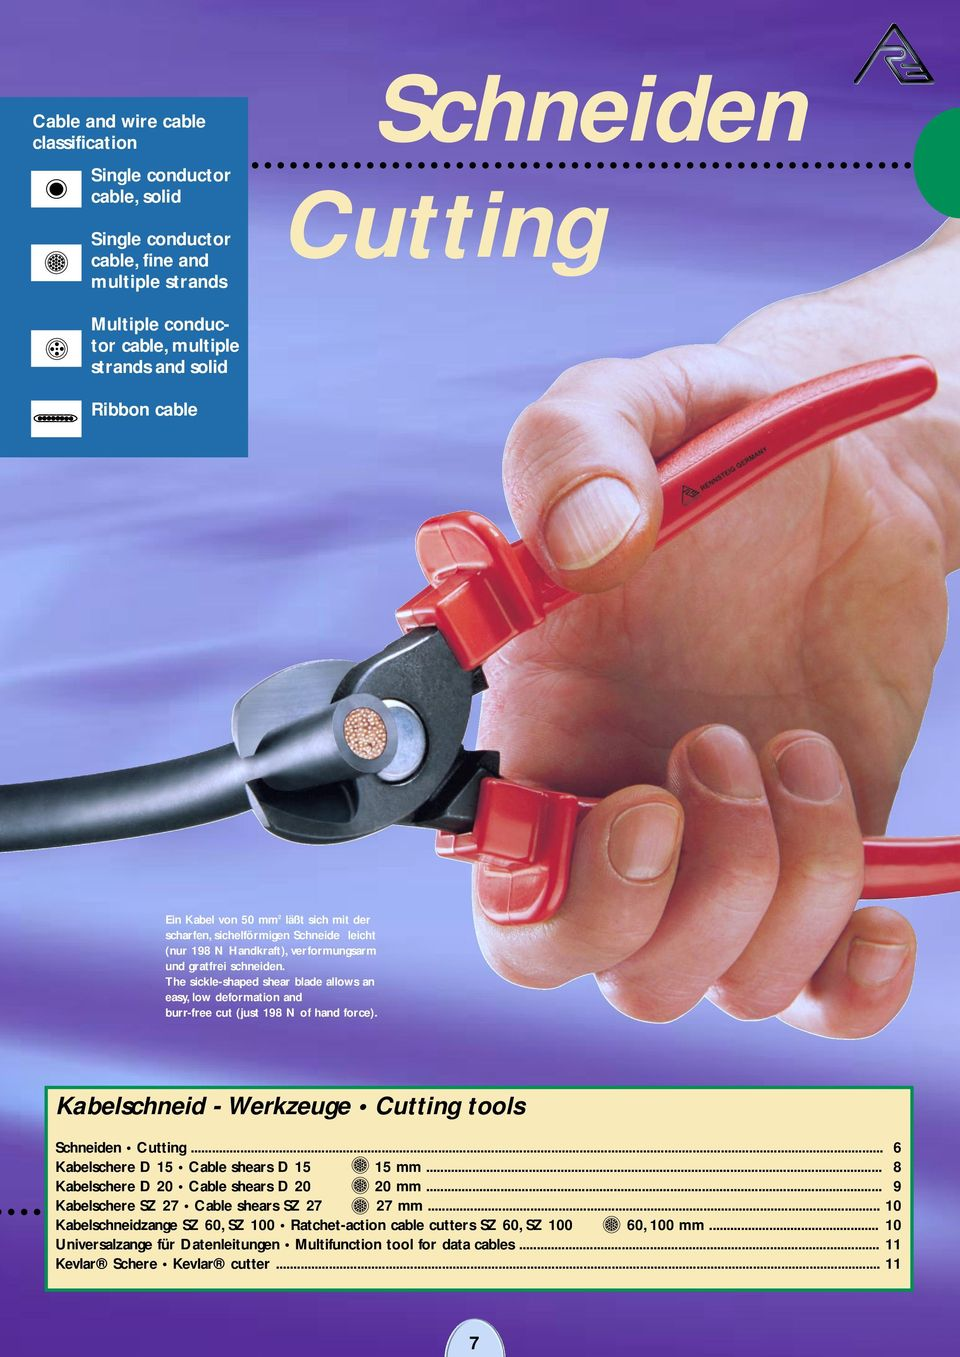 The sickle-shaped shear blade allows an easy, low deformation and burr-free cut (just 198 N of hand force). Kabelschneid - Werkzeuge Cutting tools Schneiden Cutting.